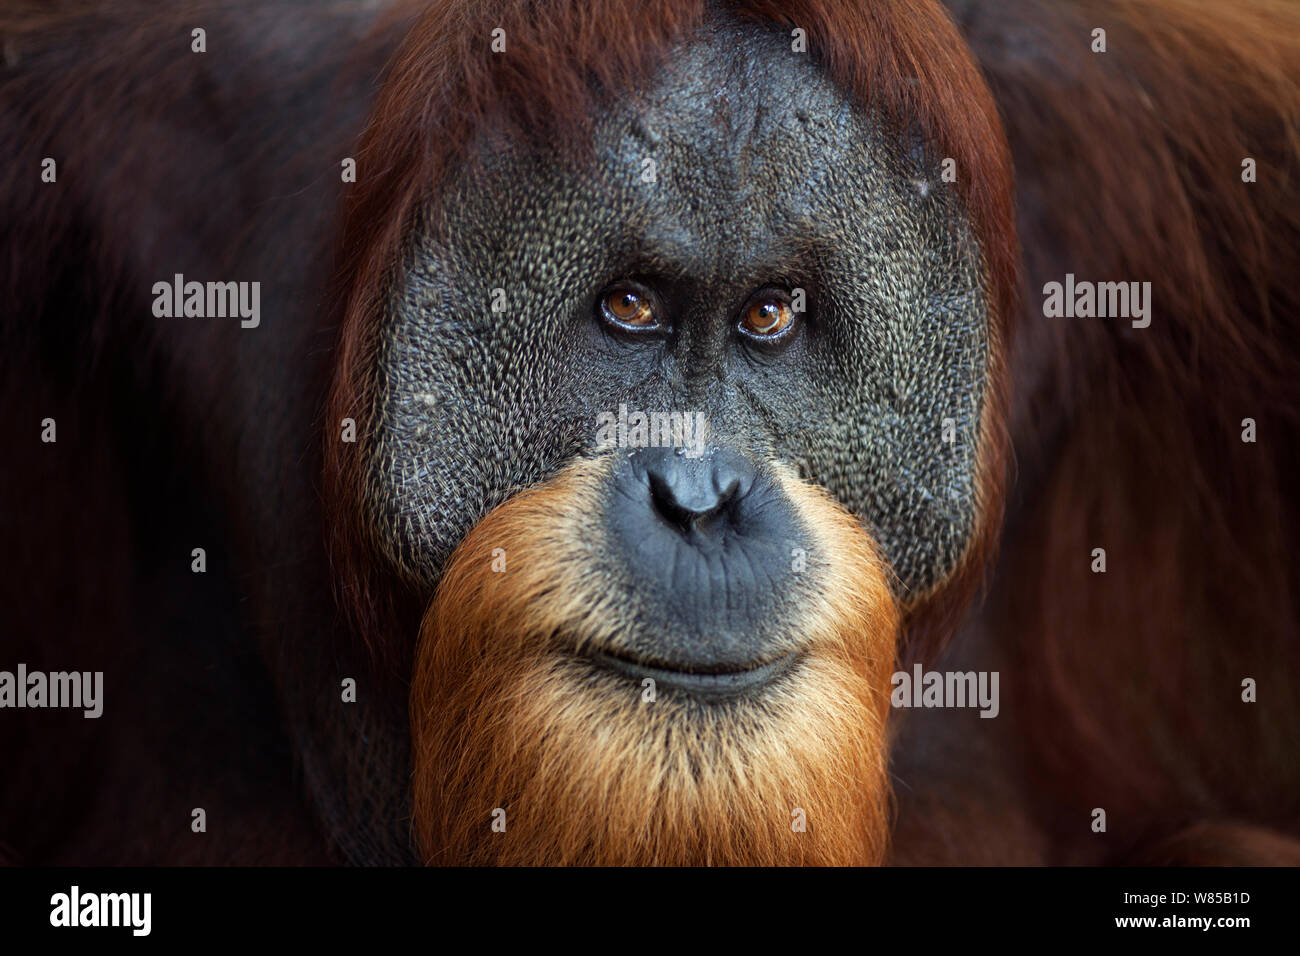 Sumatran orangutan (Pongo abelii) mature mae 'Halik' aged 26 years portrait. Gunung Leuser National Park, Sumatra, Indonesia. Rehabilitated and released (or descended from those which were released) between 1973 and 1995. Stock Photo